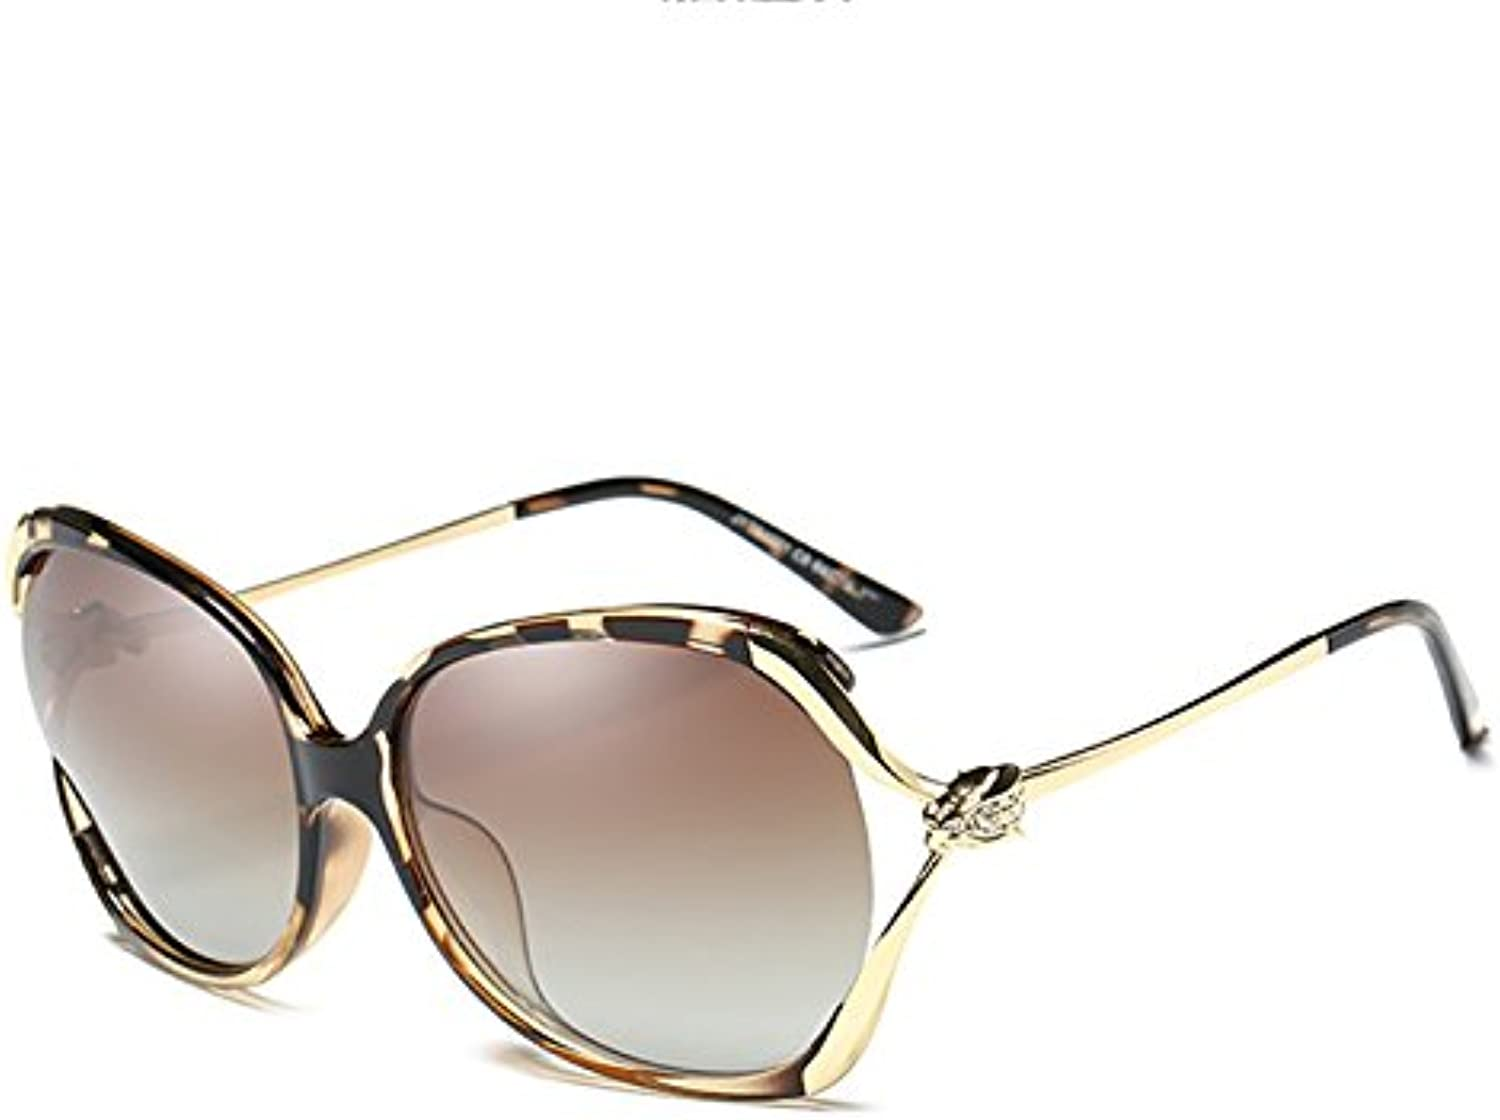 Moolo Sunglasses Women Polarized UV Frame Fashion Driving Round Face Hollow Diamonds Driving Sunglasses